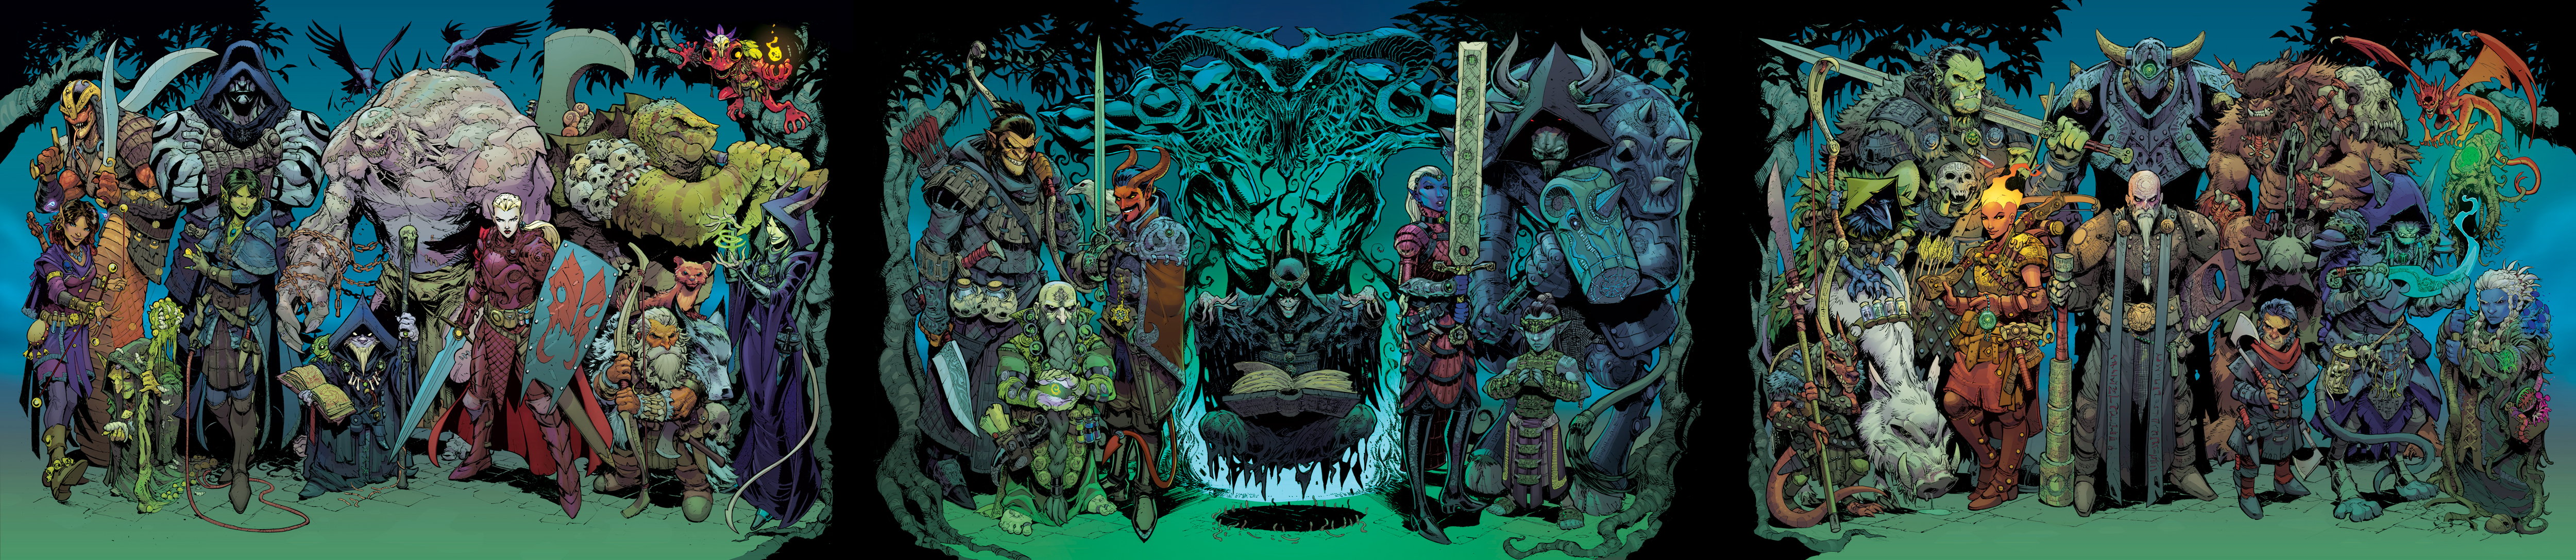 31 Evil Dungeons and Dragons Characters- COLOR